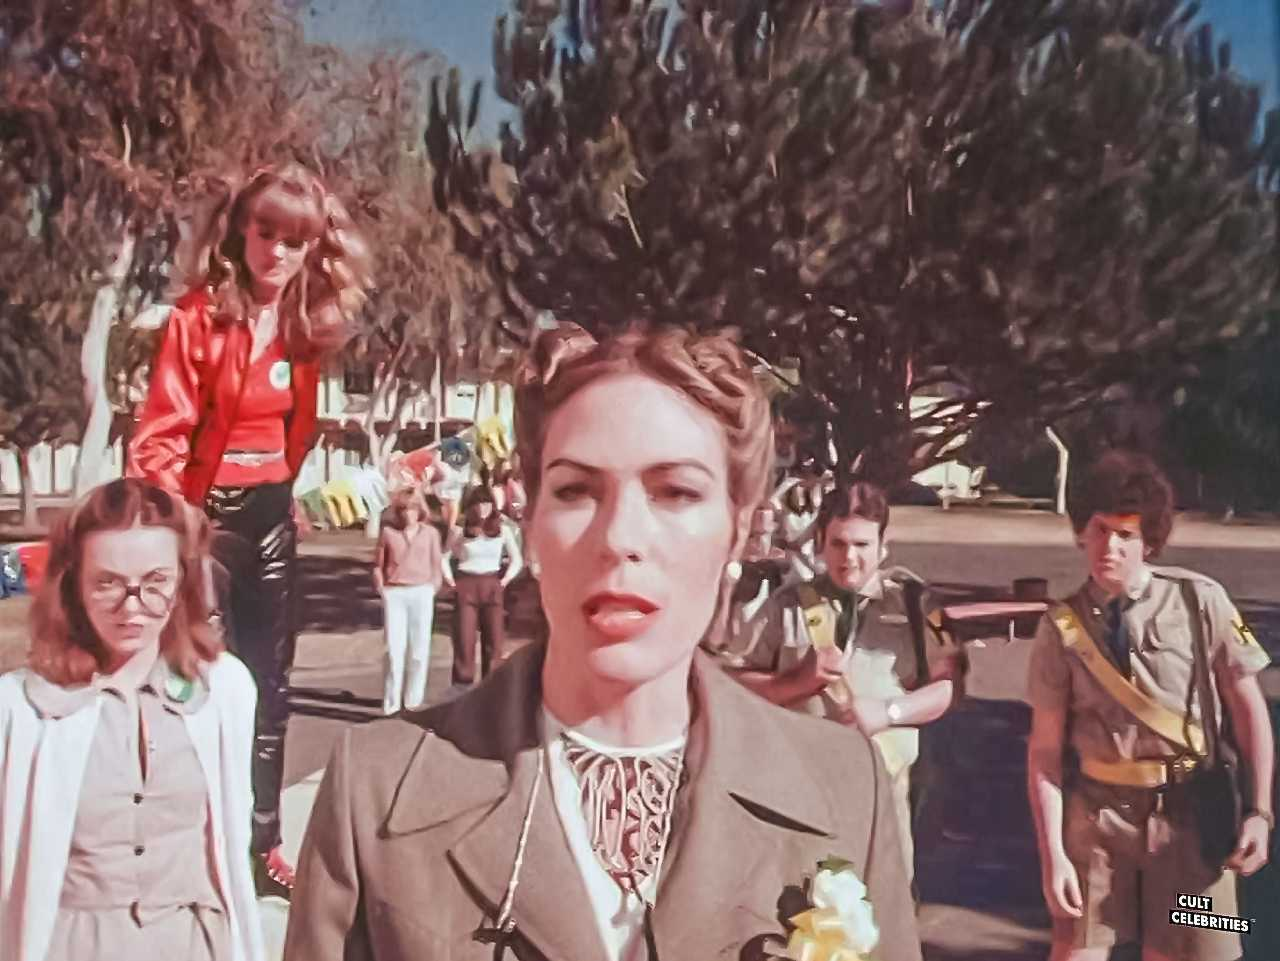 Mary Woronov as Miss Evelyn Togar in Rock 'n' Roll High School (1979)